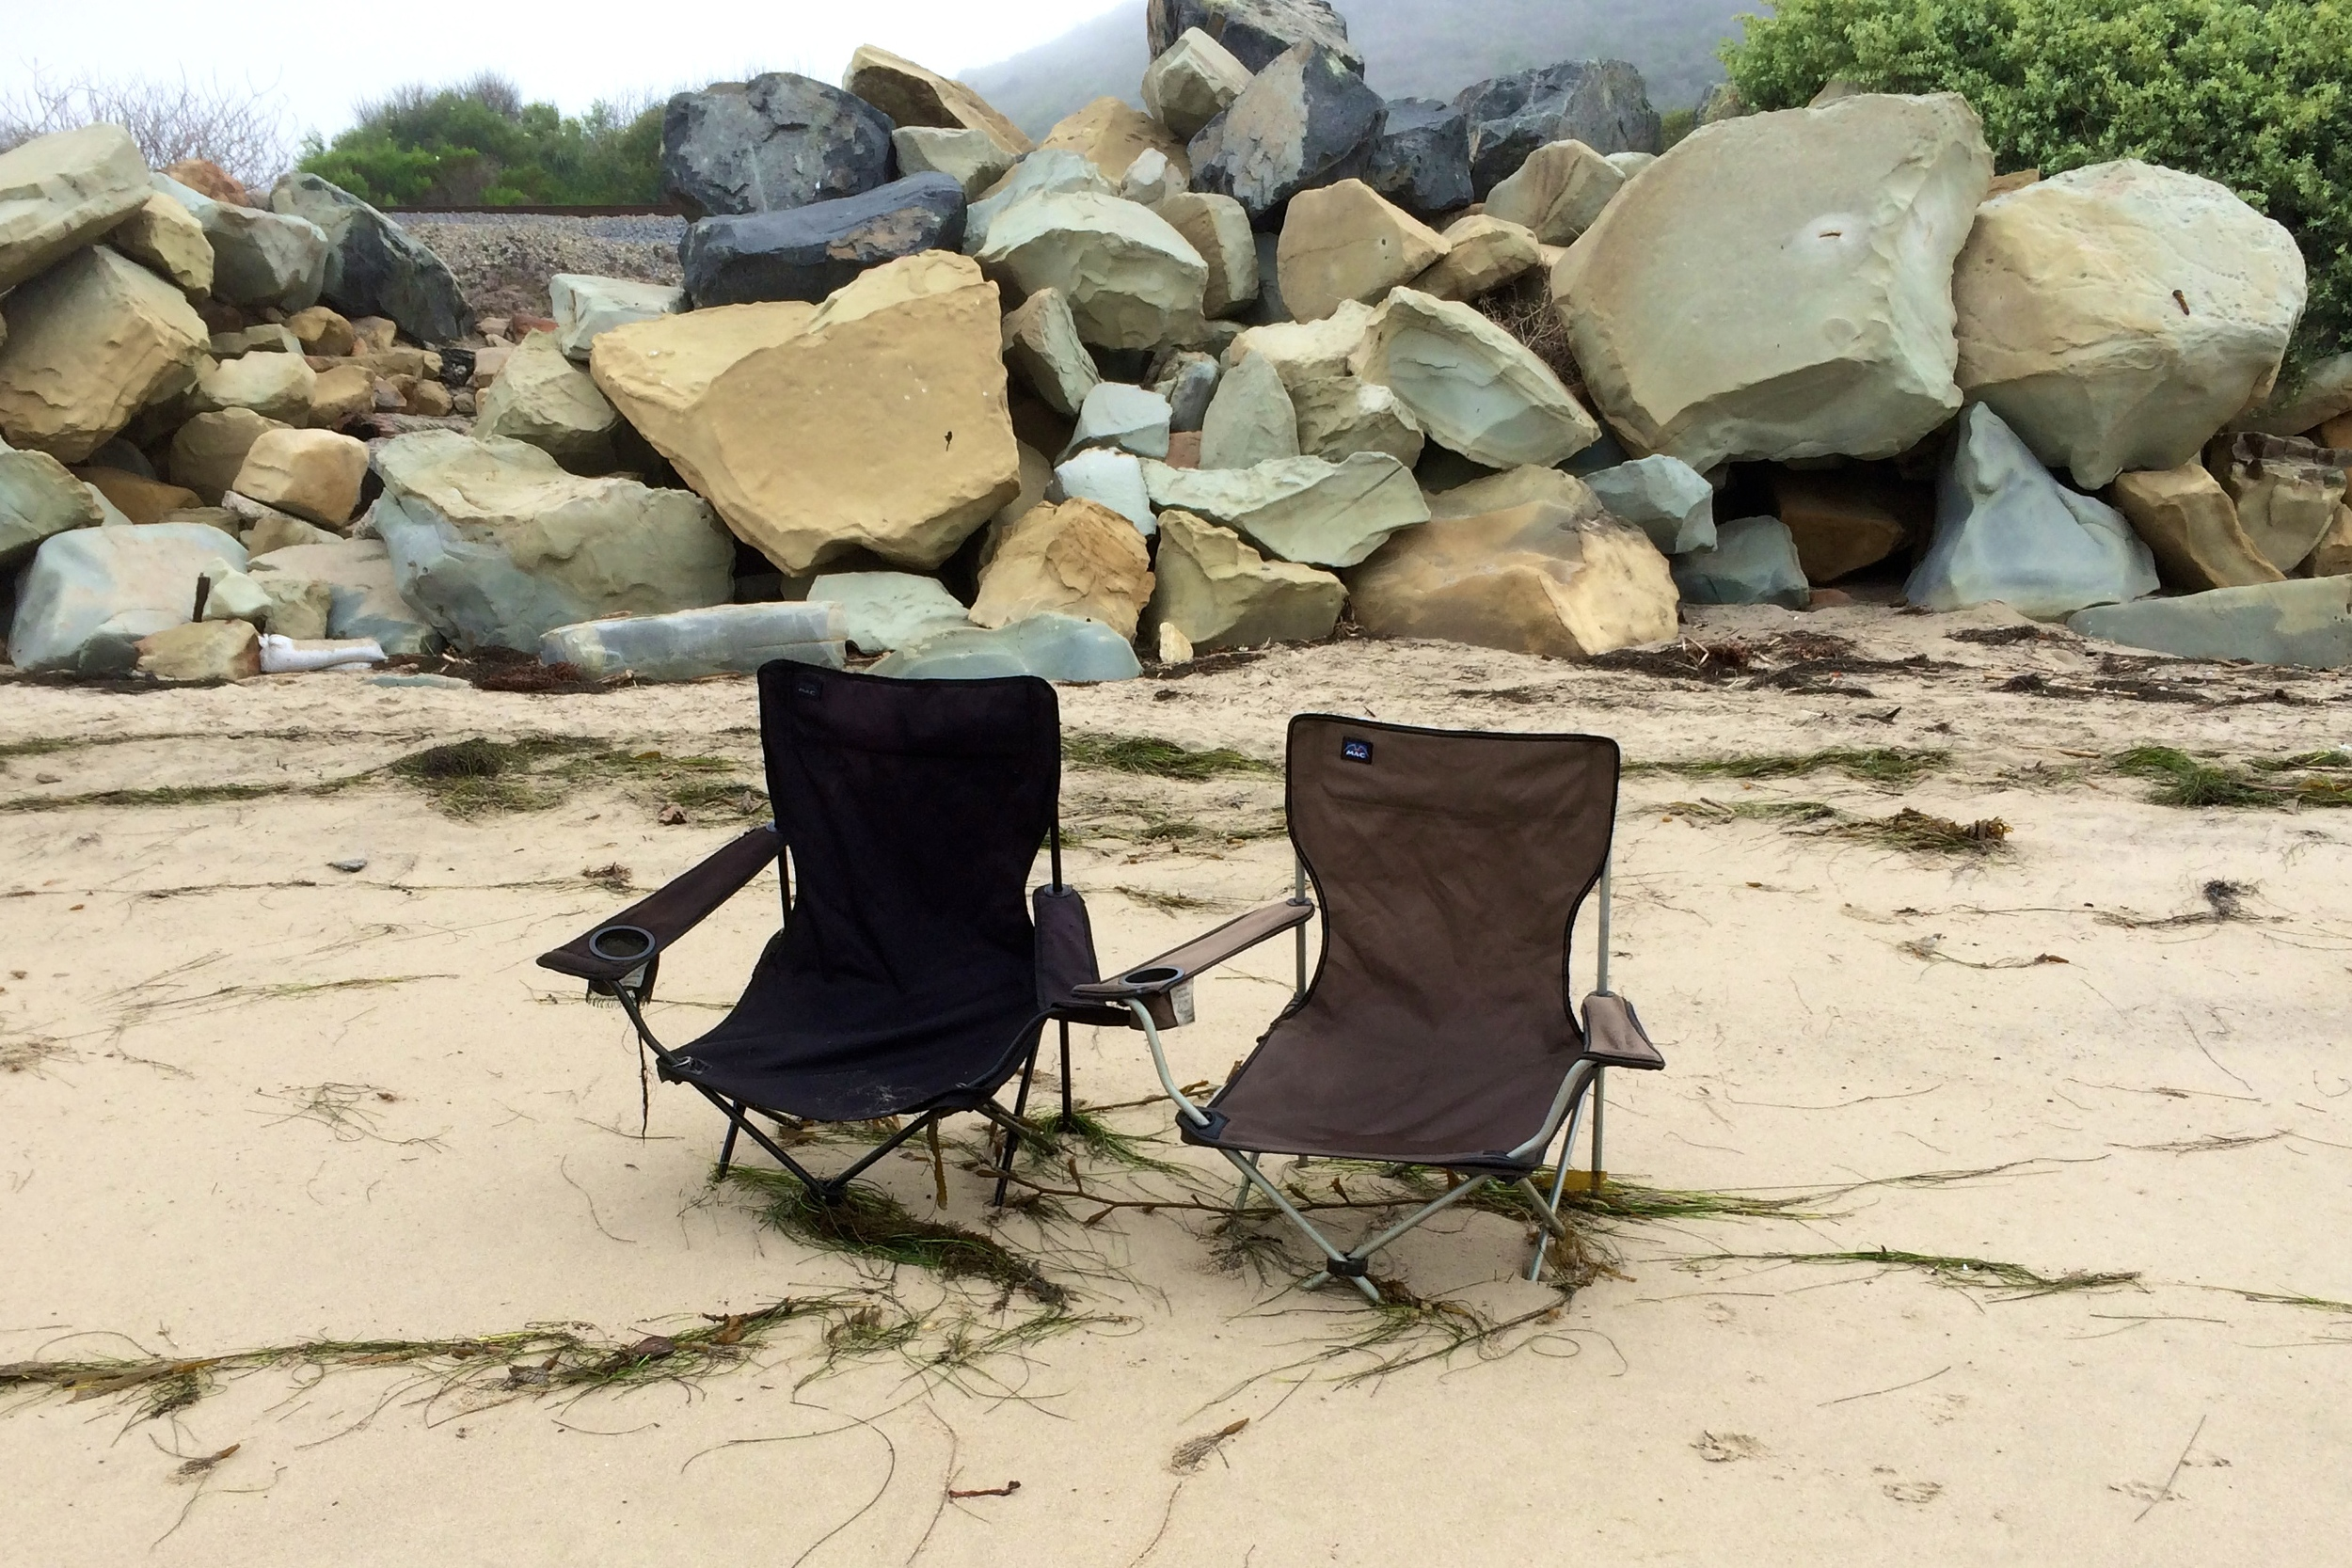 These chairs have obviously been here for a while. They are anchored in about a foot of sand. So wistfully abandoned.